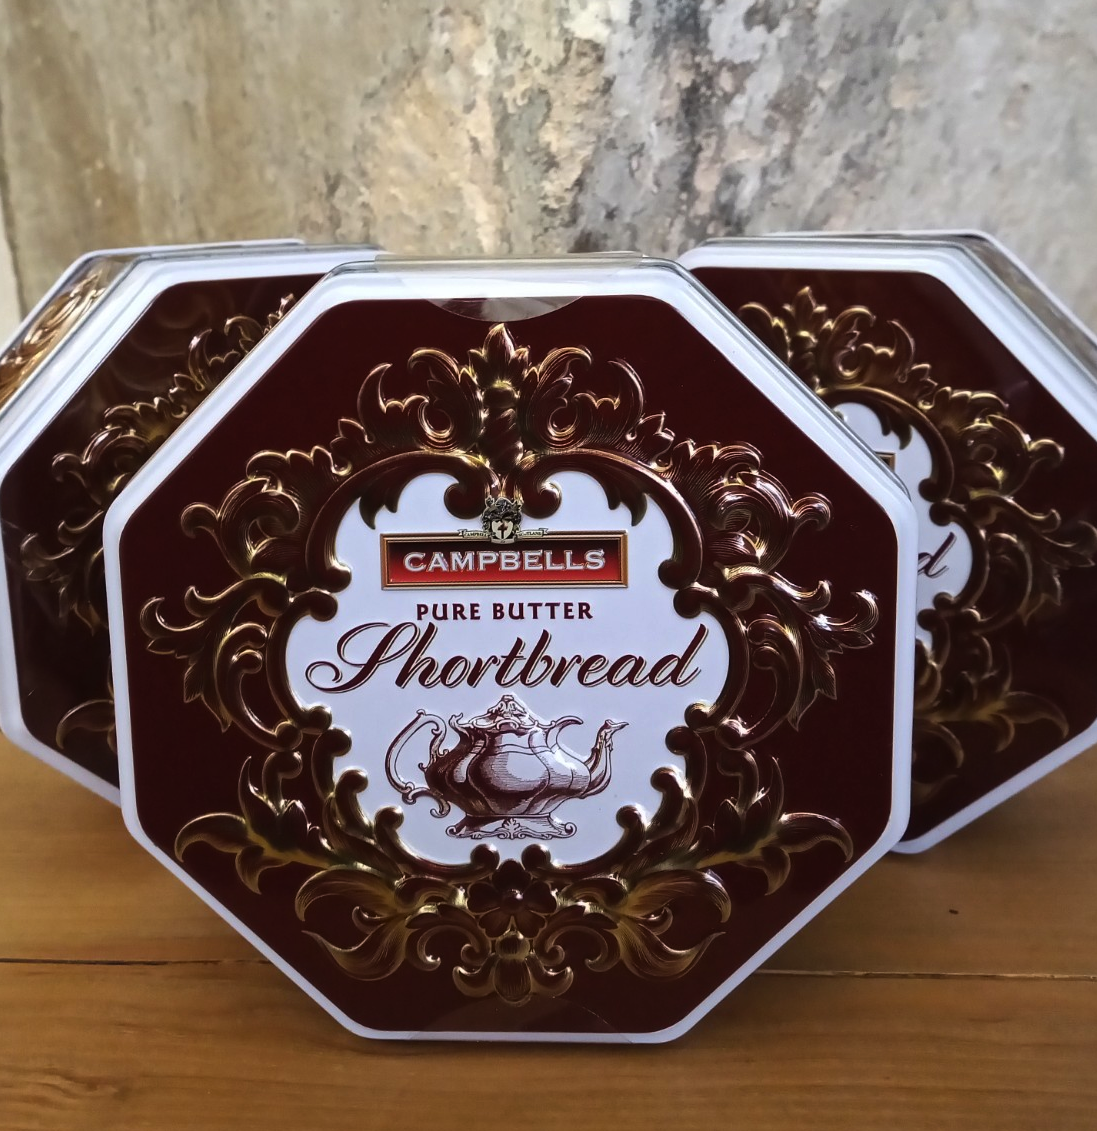 Campbell's Pure Butter Shortbread